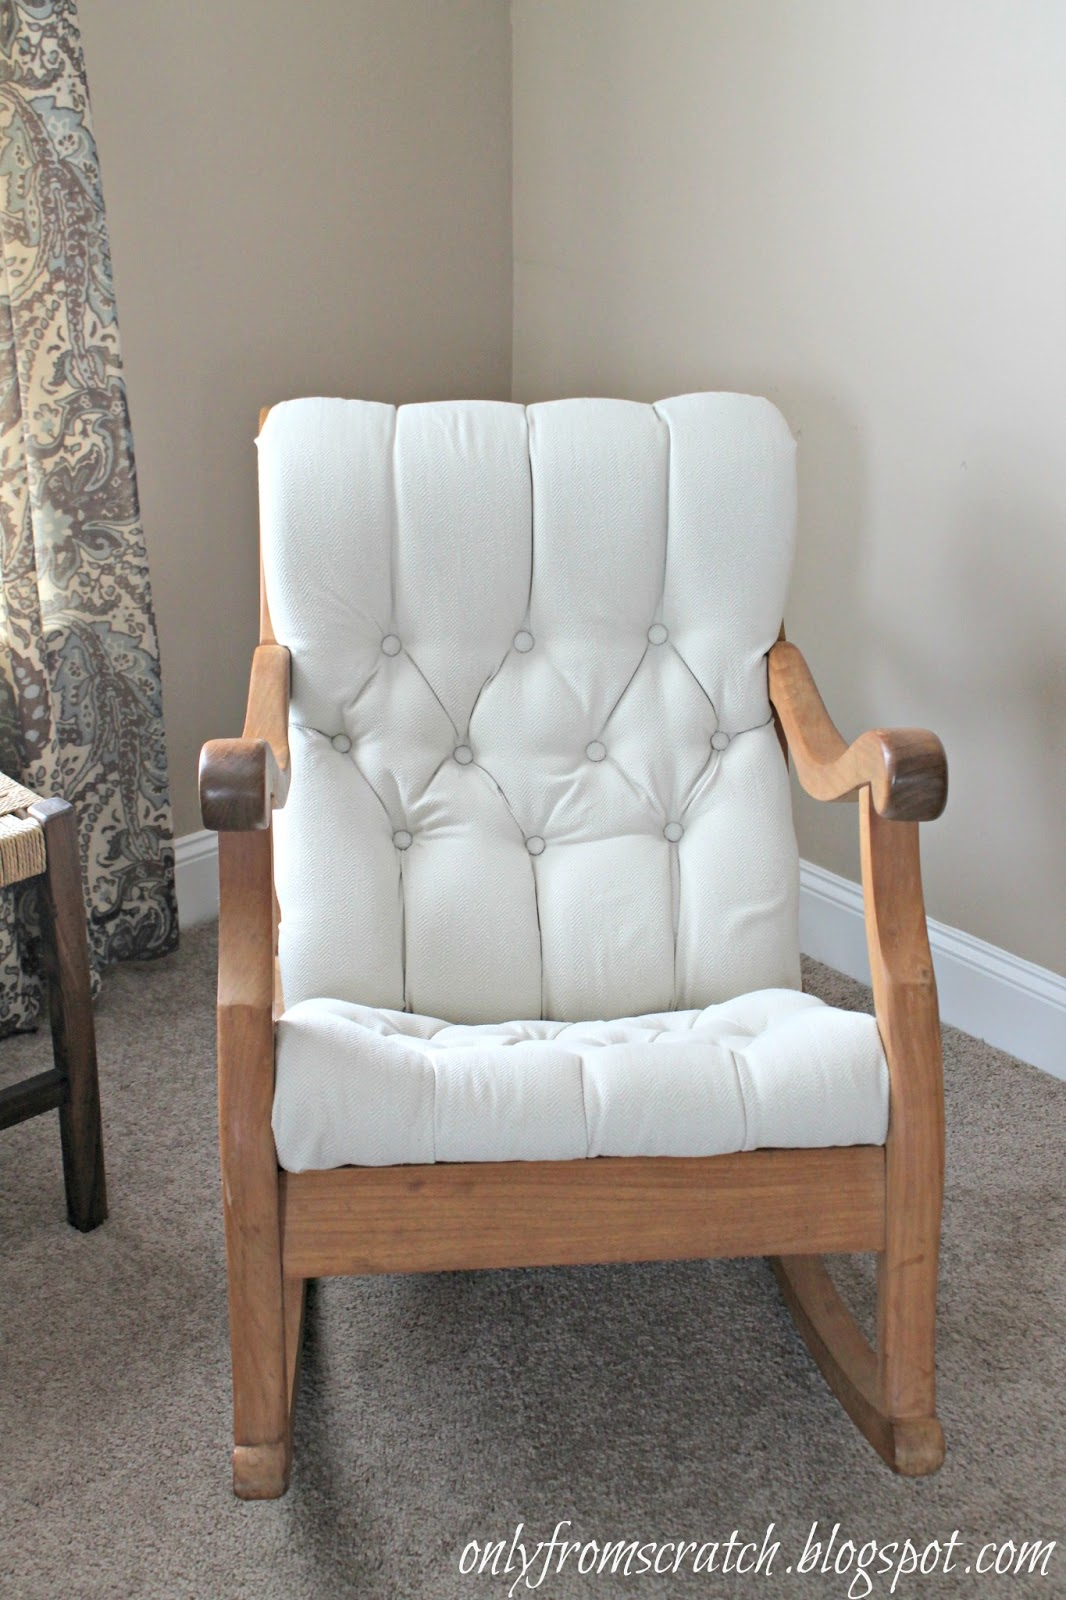 Nursery rocking chair a great furniture for nursery inoutinterior - Rocking chair but ...